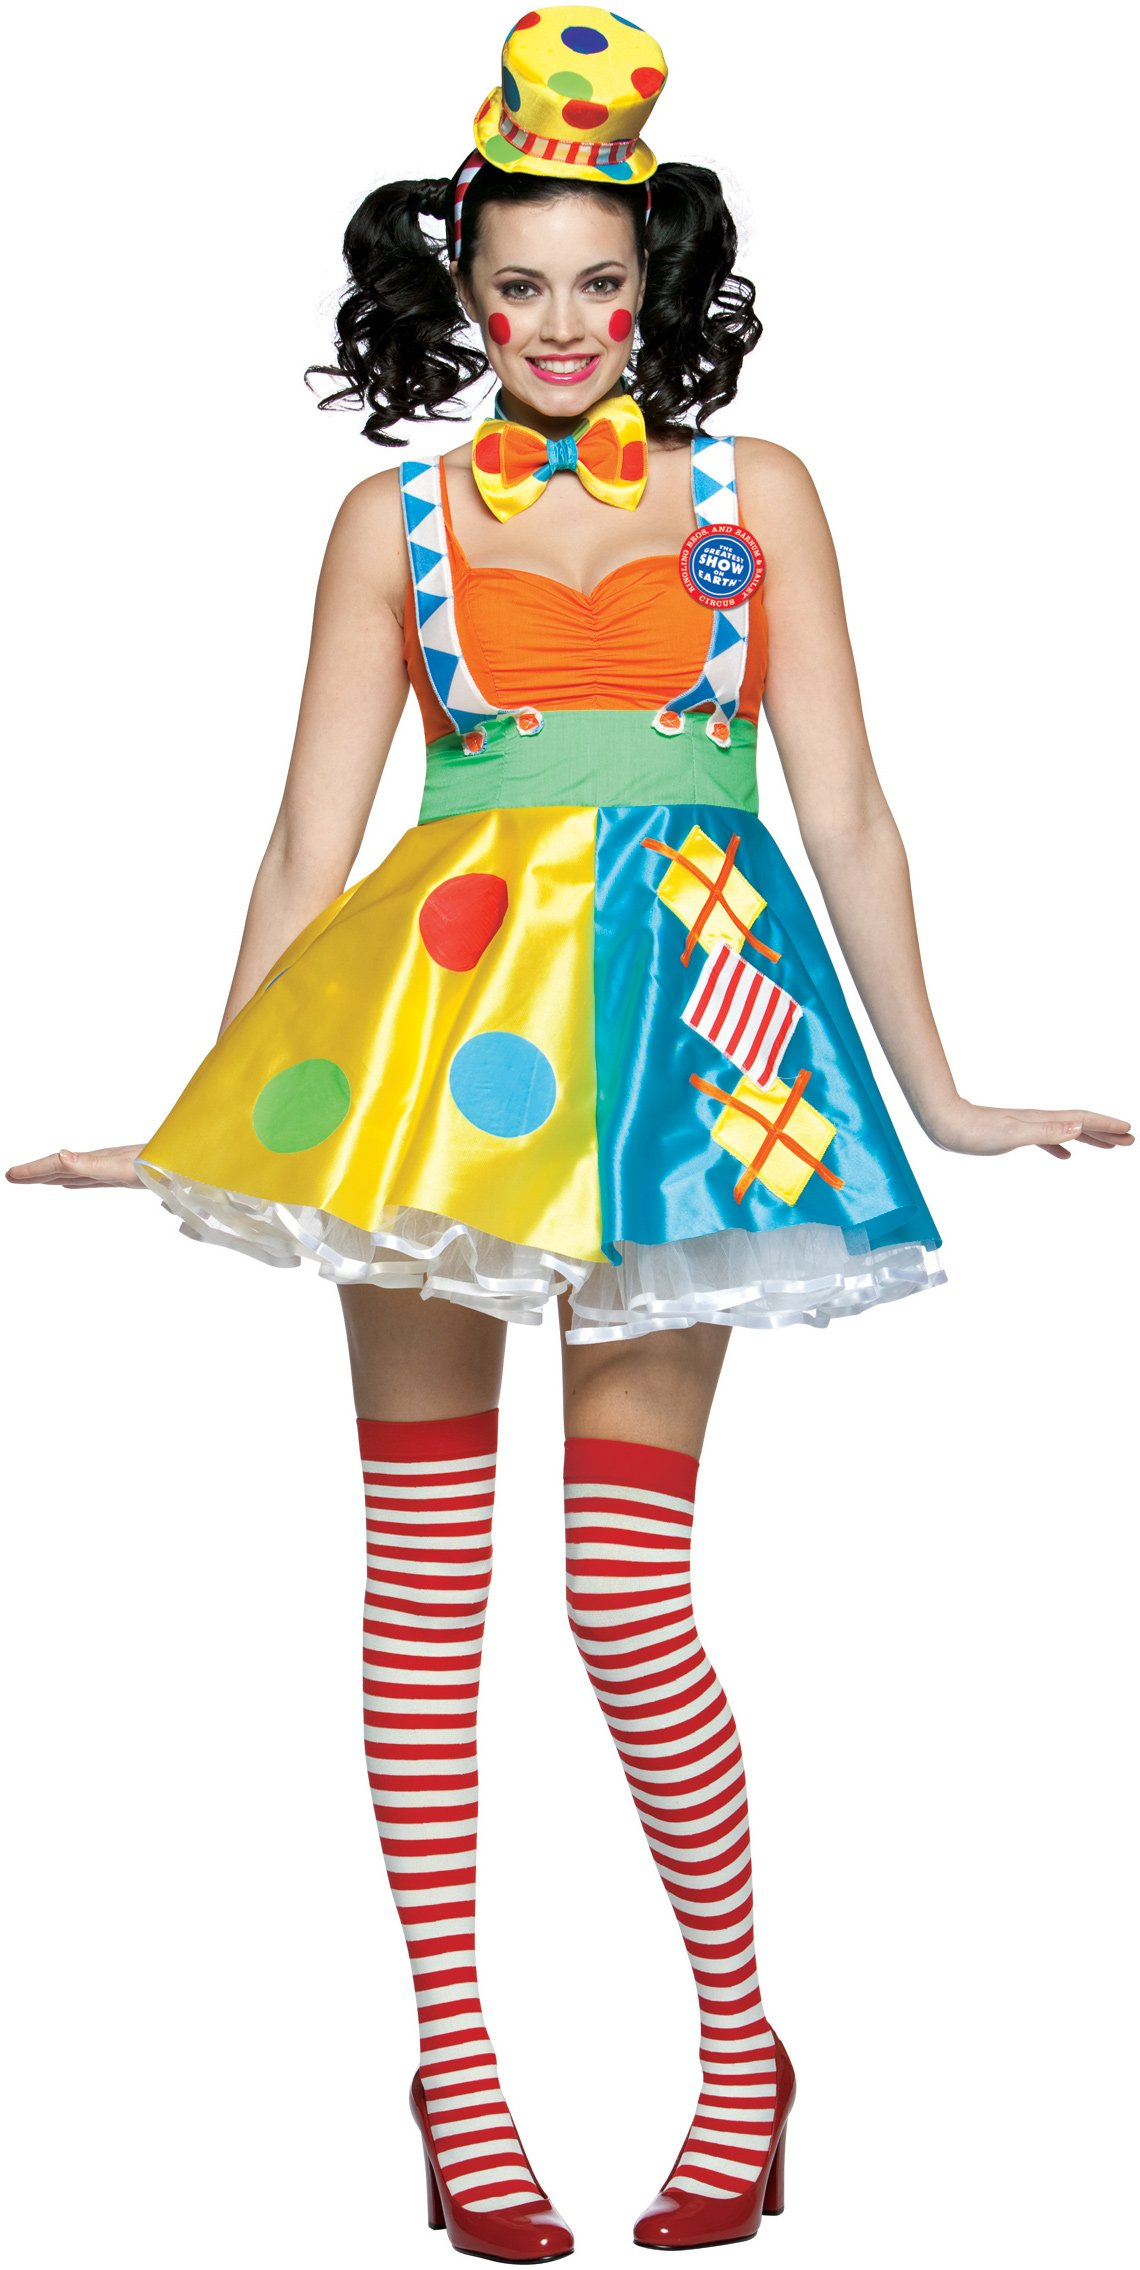 Ringling Bros. Diamond Dot Clown Adult Circus Costume